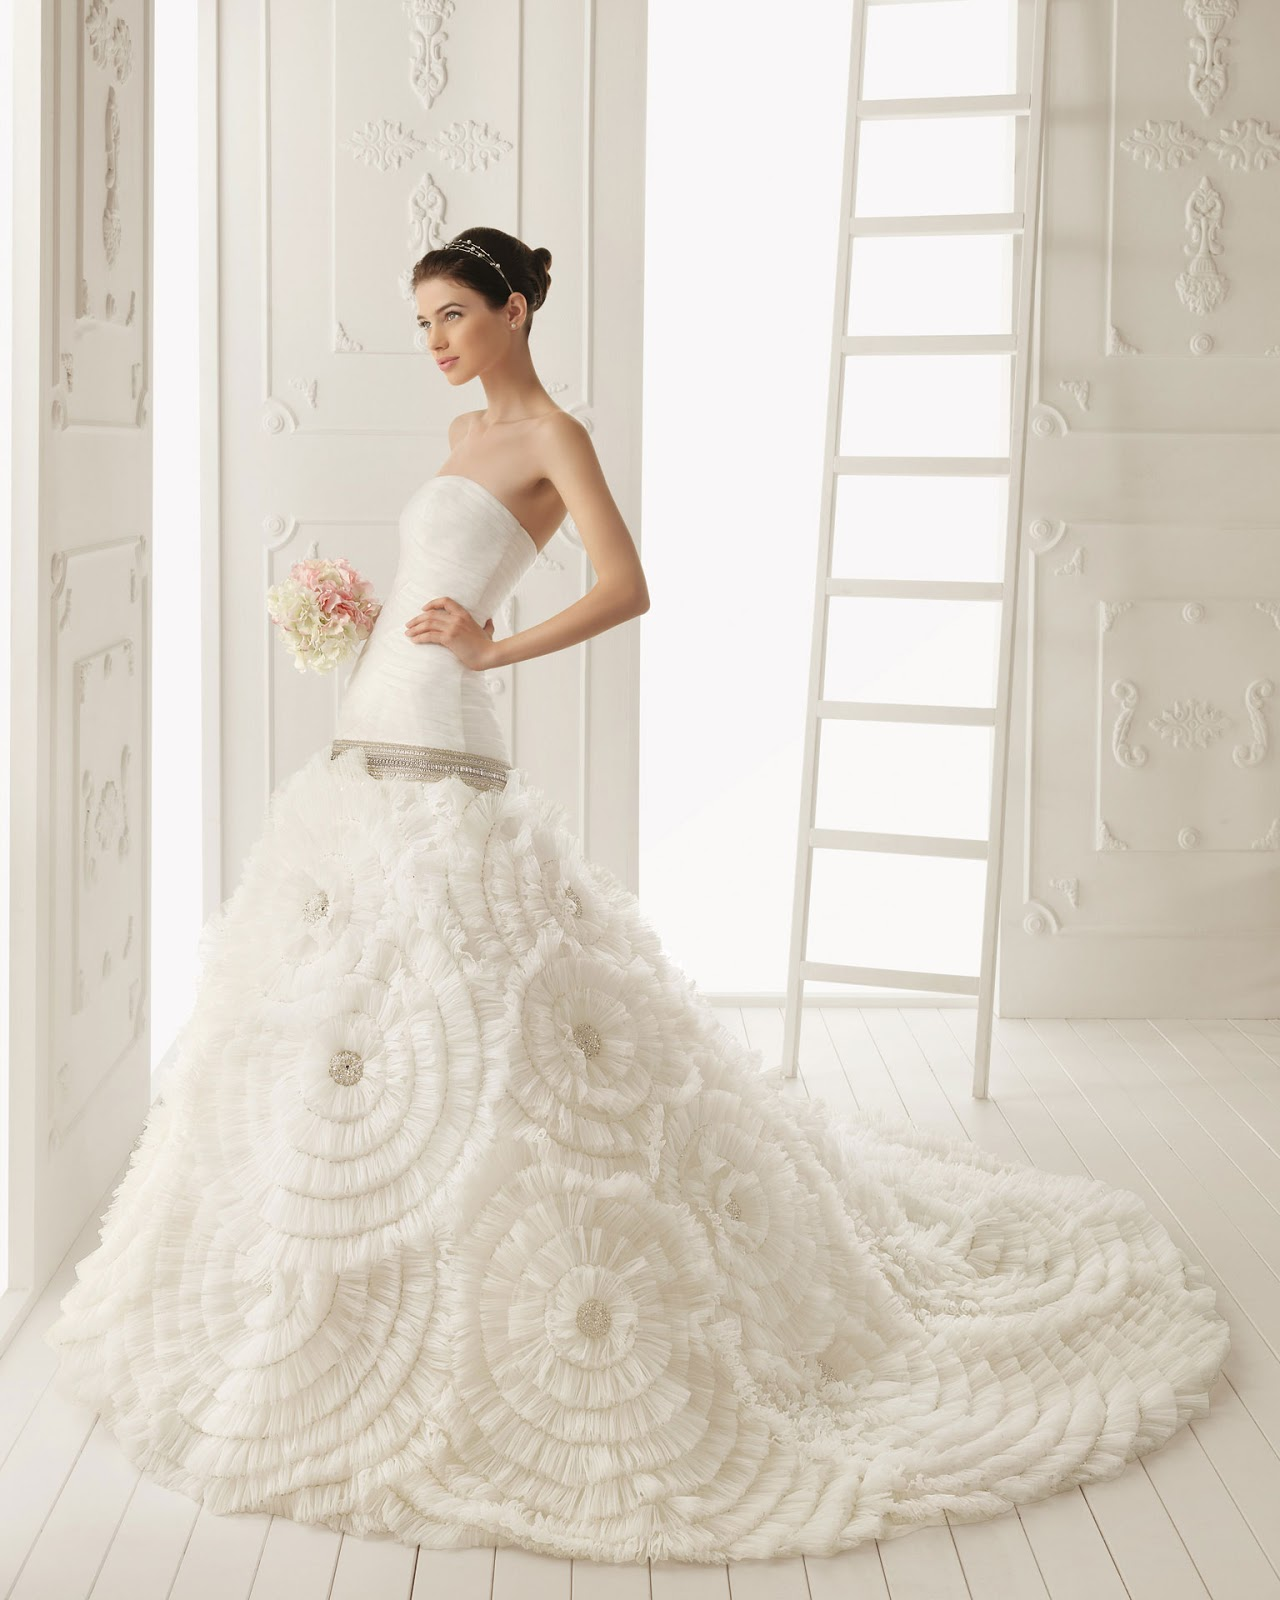 Wedding Gowns With Designs : Fashionloly wedding dress trends shown elegant